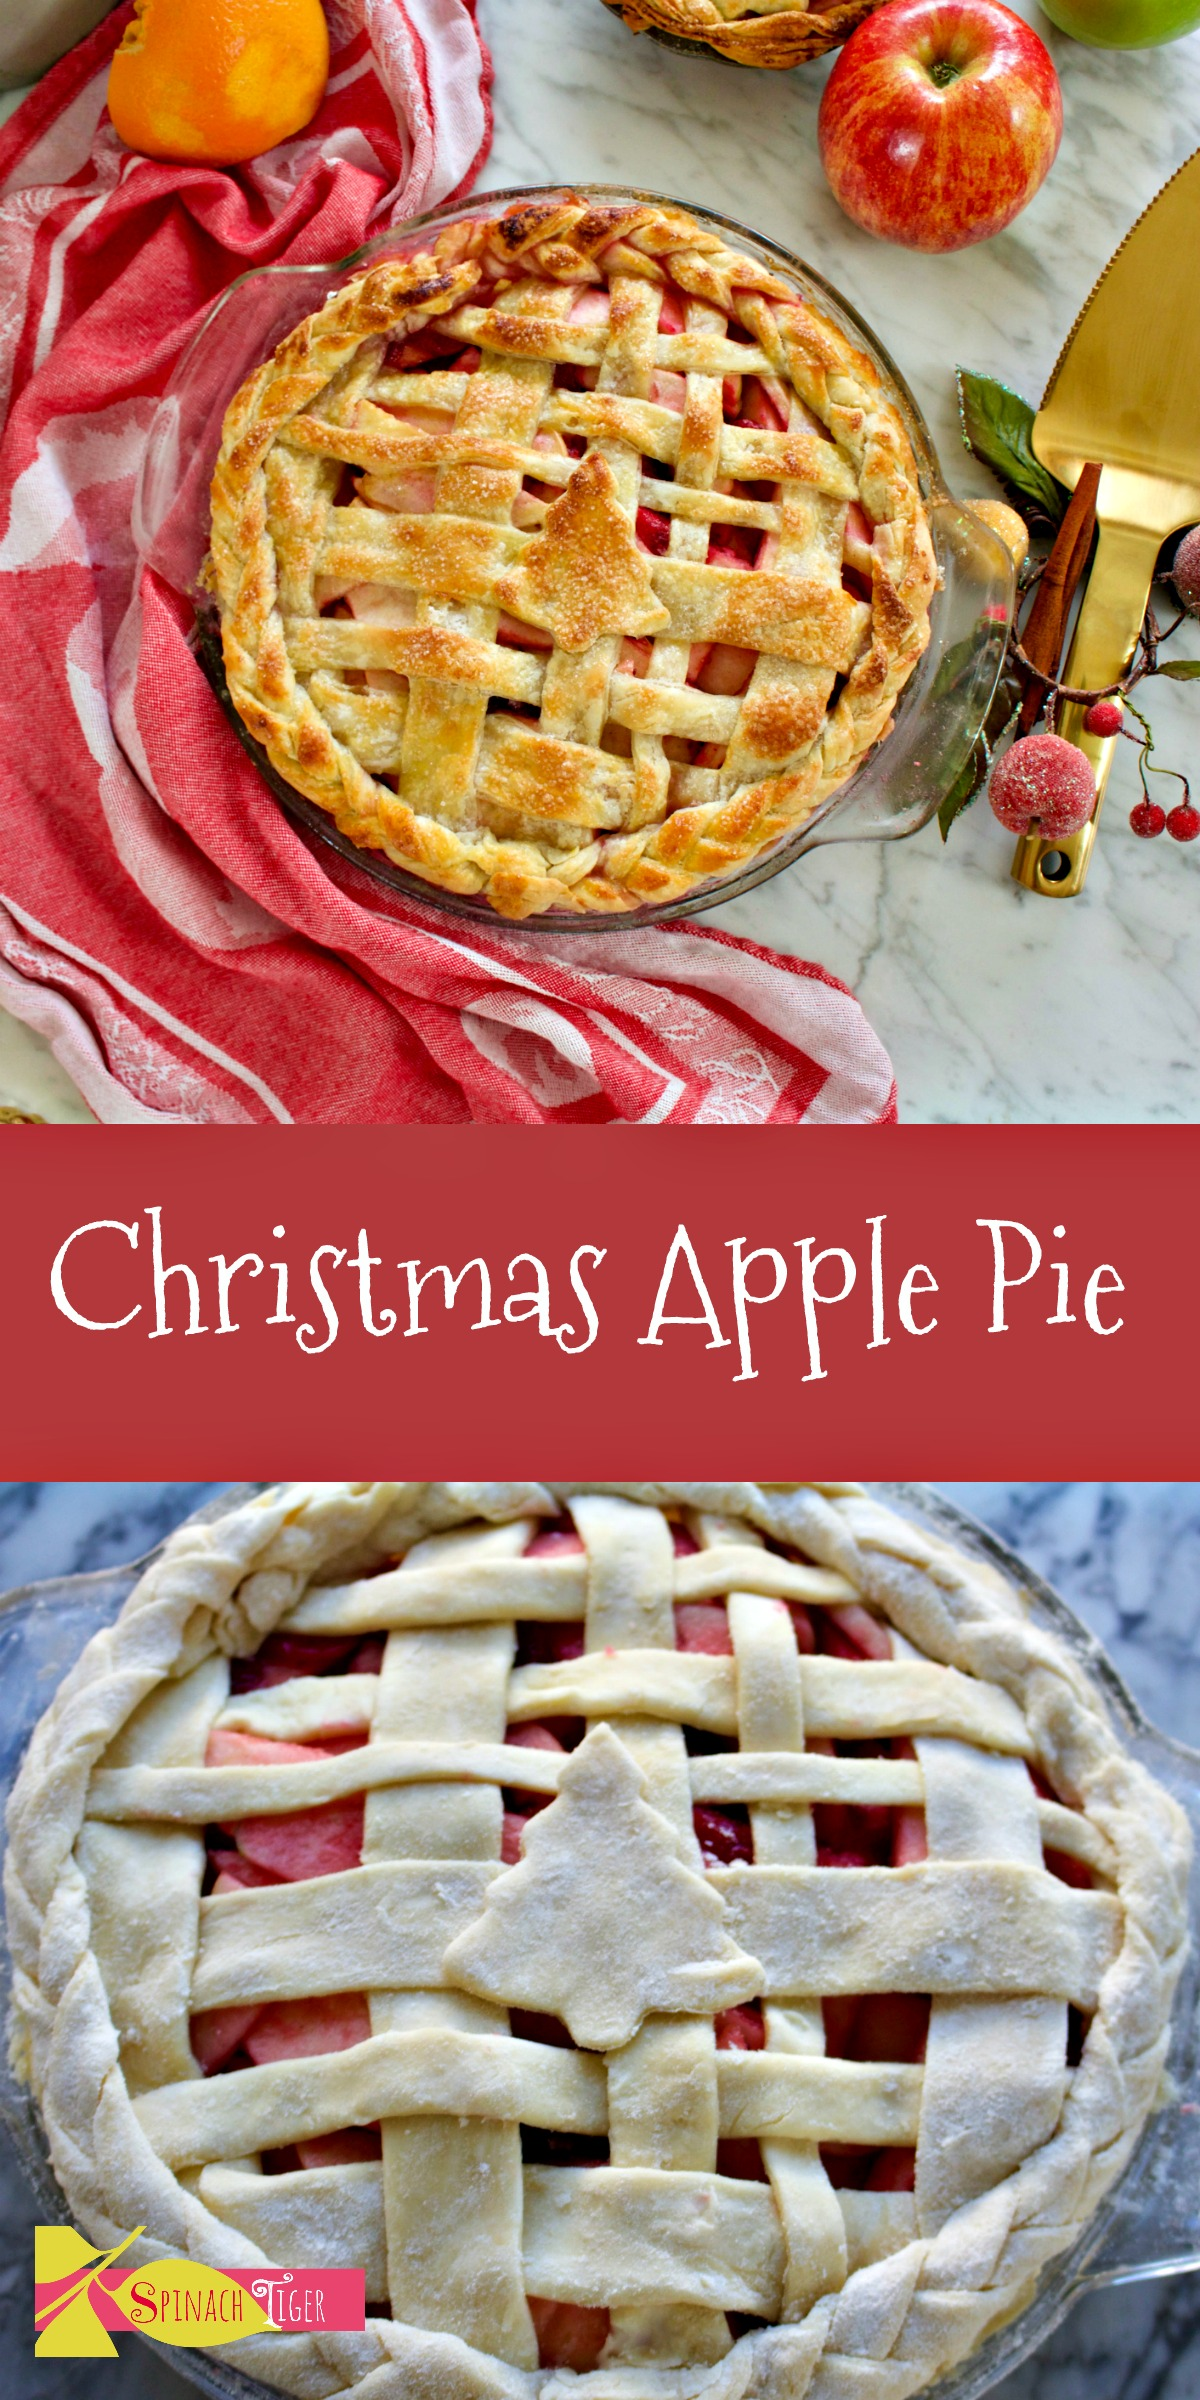 Christmas Apple Pie 2 from Spinach Tiger